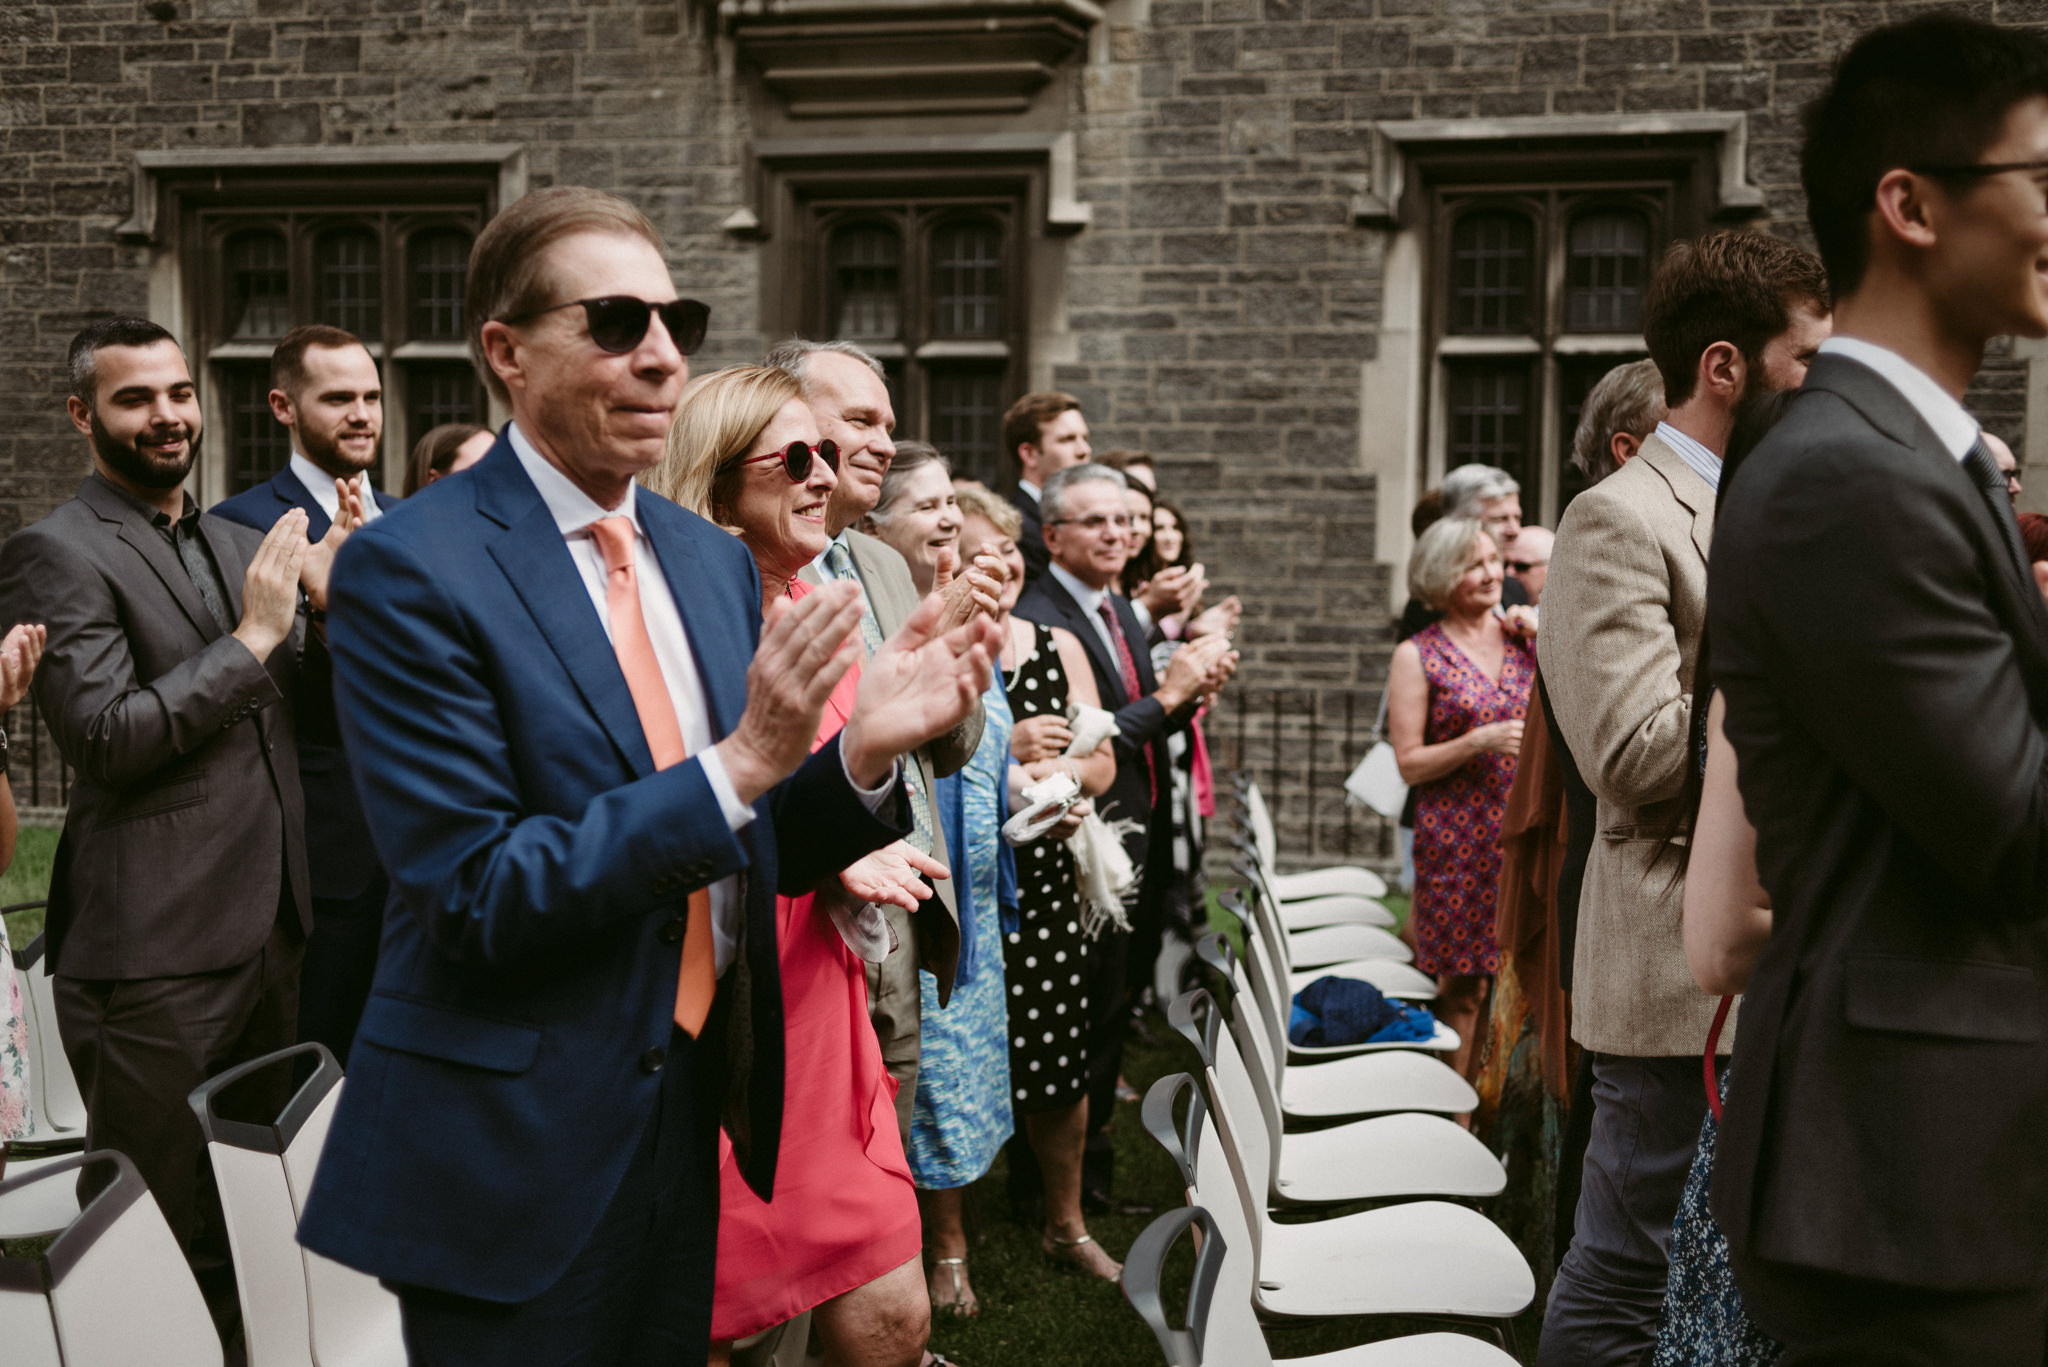 guests during outdoor wedding ceremony at Hart House